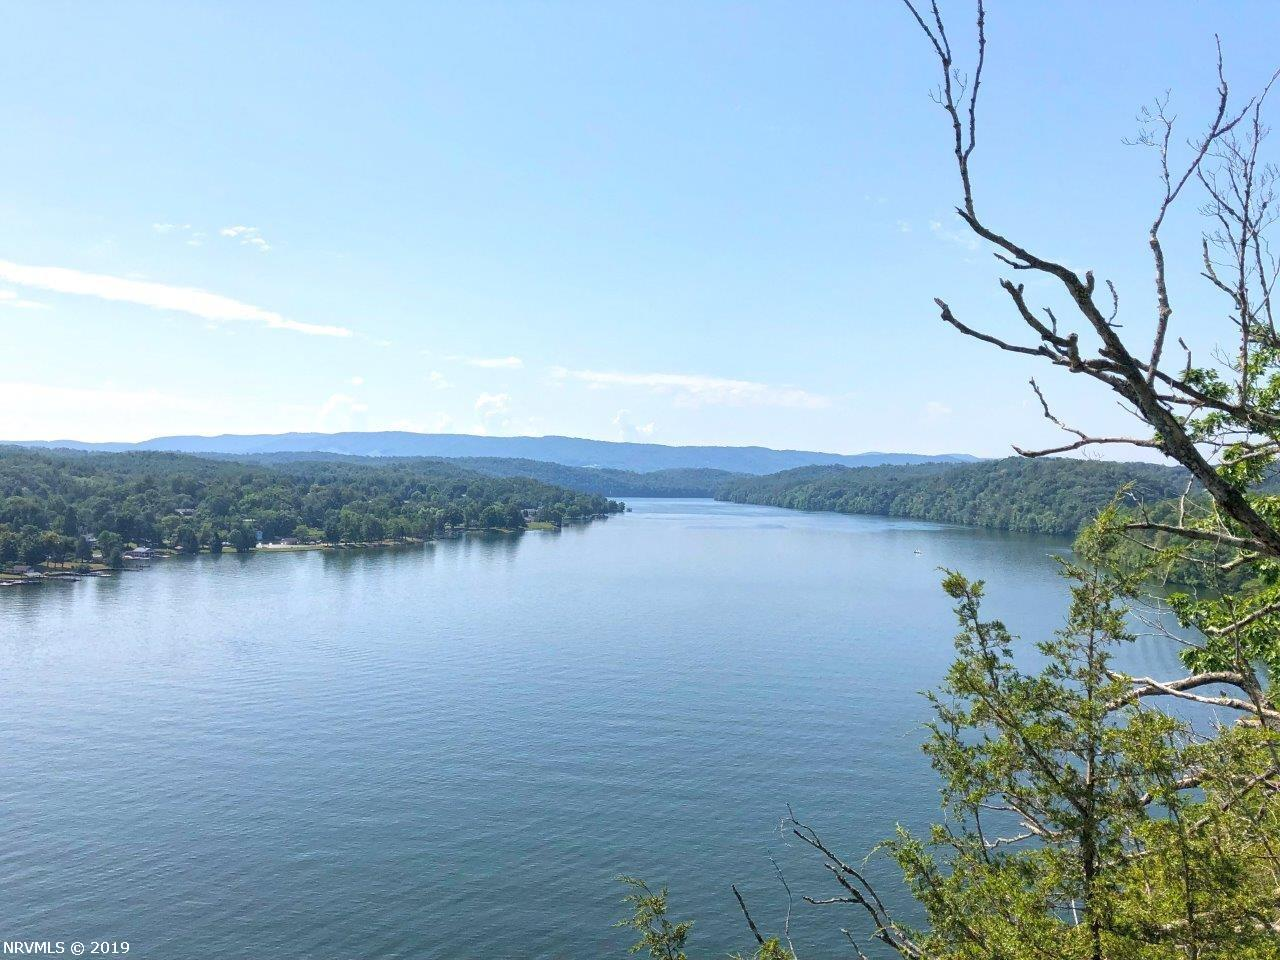 Beautiful lake front property on Claytor Lake. High bluff with long range lake and mountain views. Long cove with easy access to the water. Located on paved private drive. Large timber, pond, stream this lakefront property has it all. Private compound with unlimited potential.